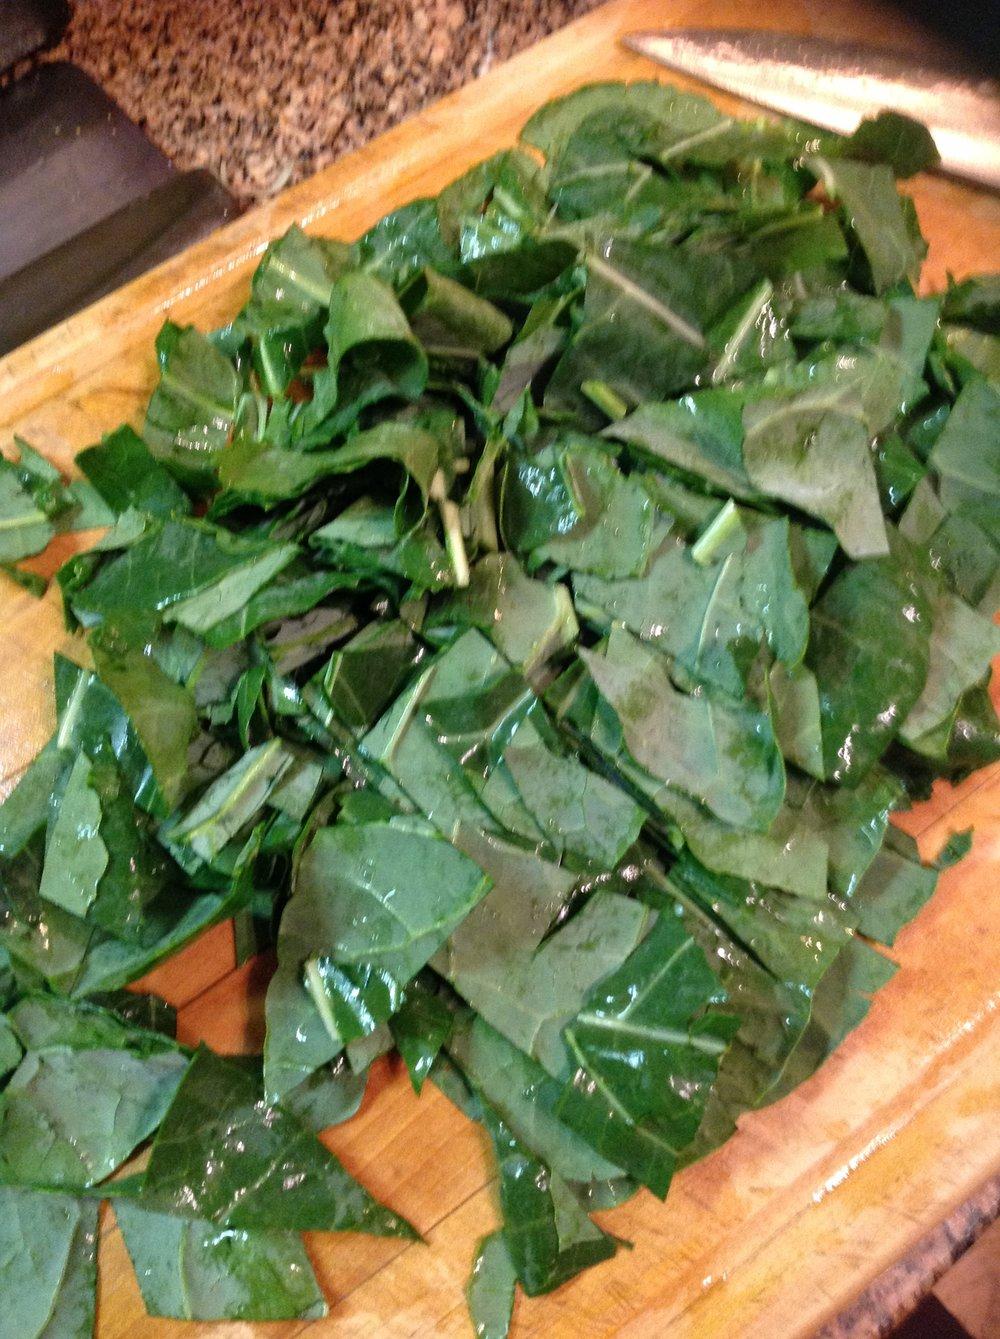 Chef's Healthy Tip:  Dark greens add plant-based nutrition and beautiful color to this healthy, plant-based vegan curry.  I love using collard greens for a touch of sweetness, but you can use spinach, kale, or any dark greens you like